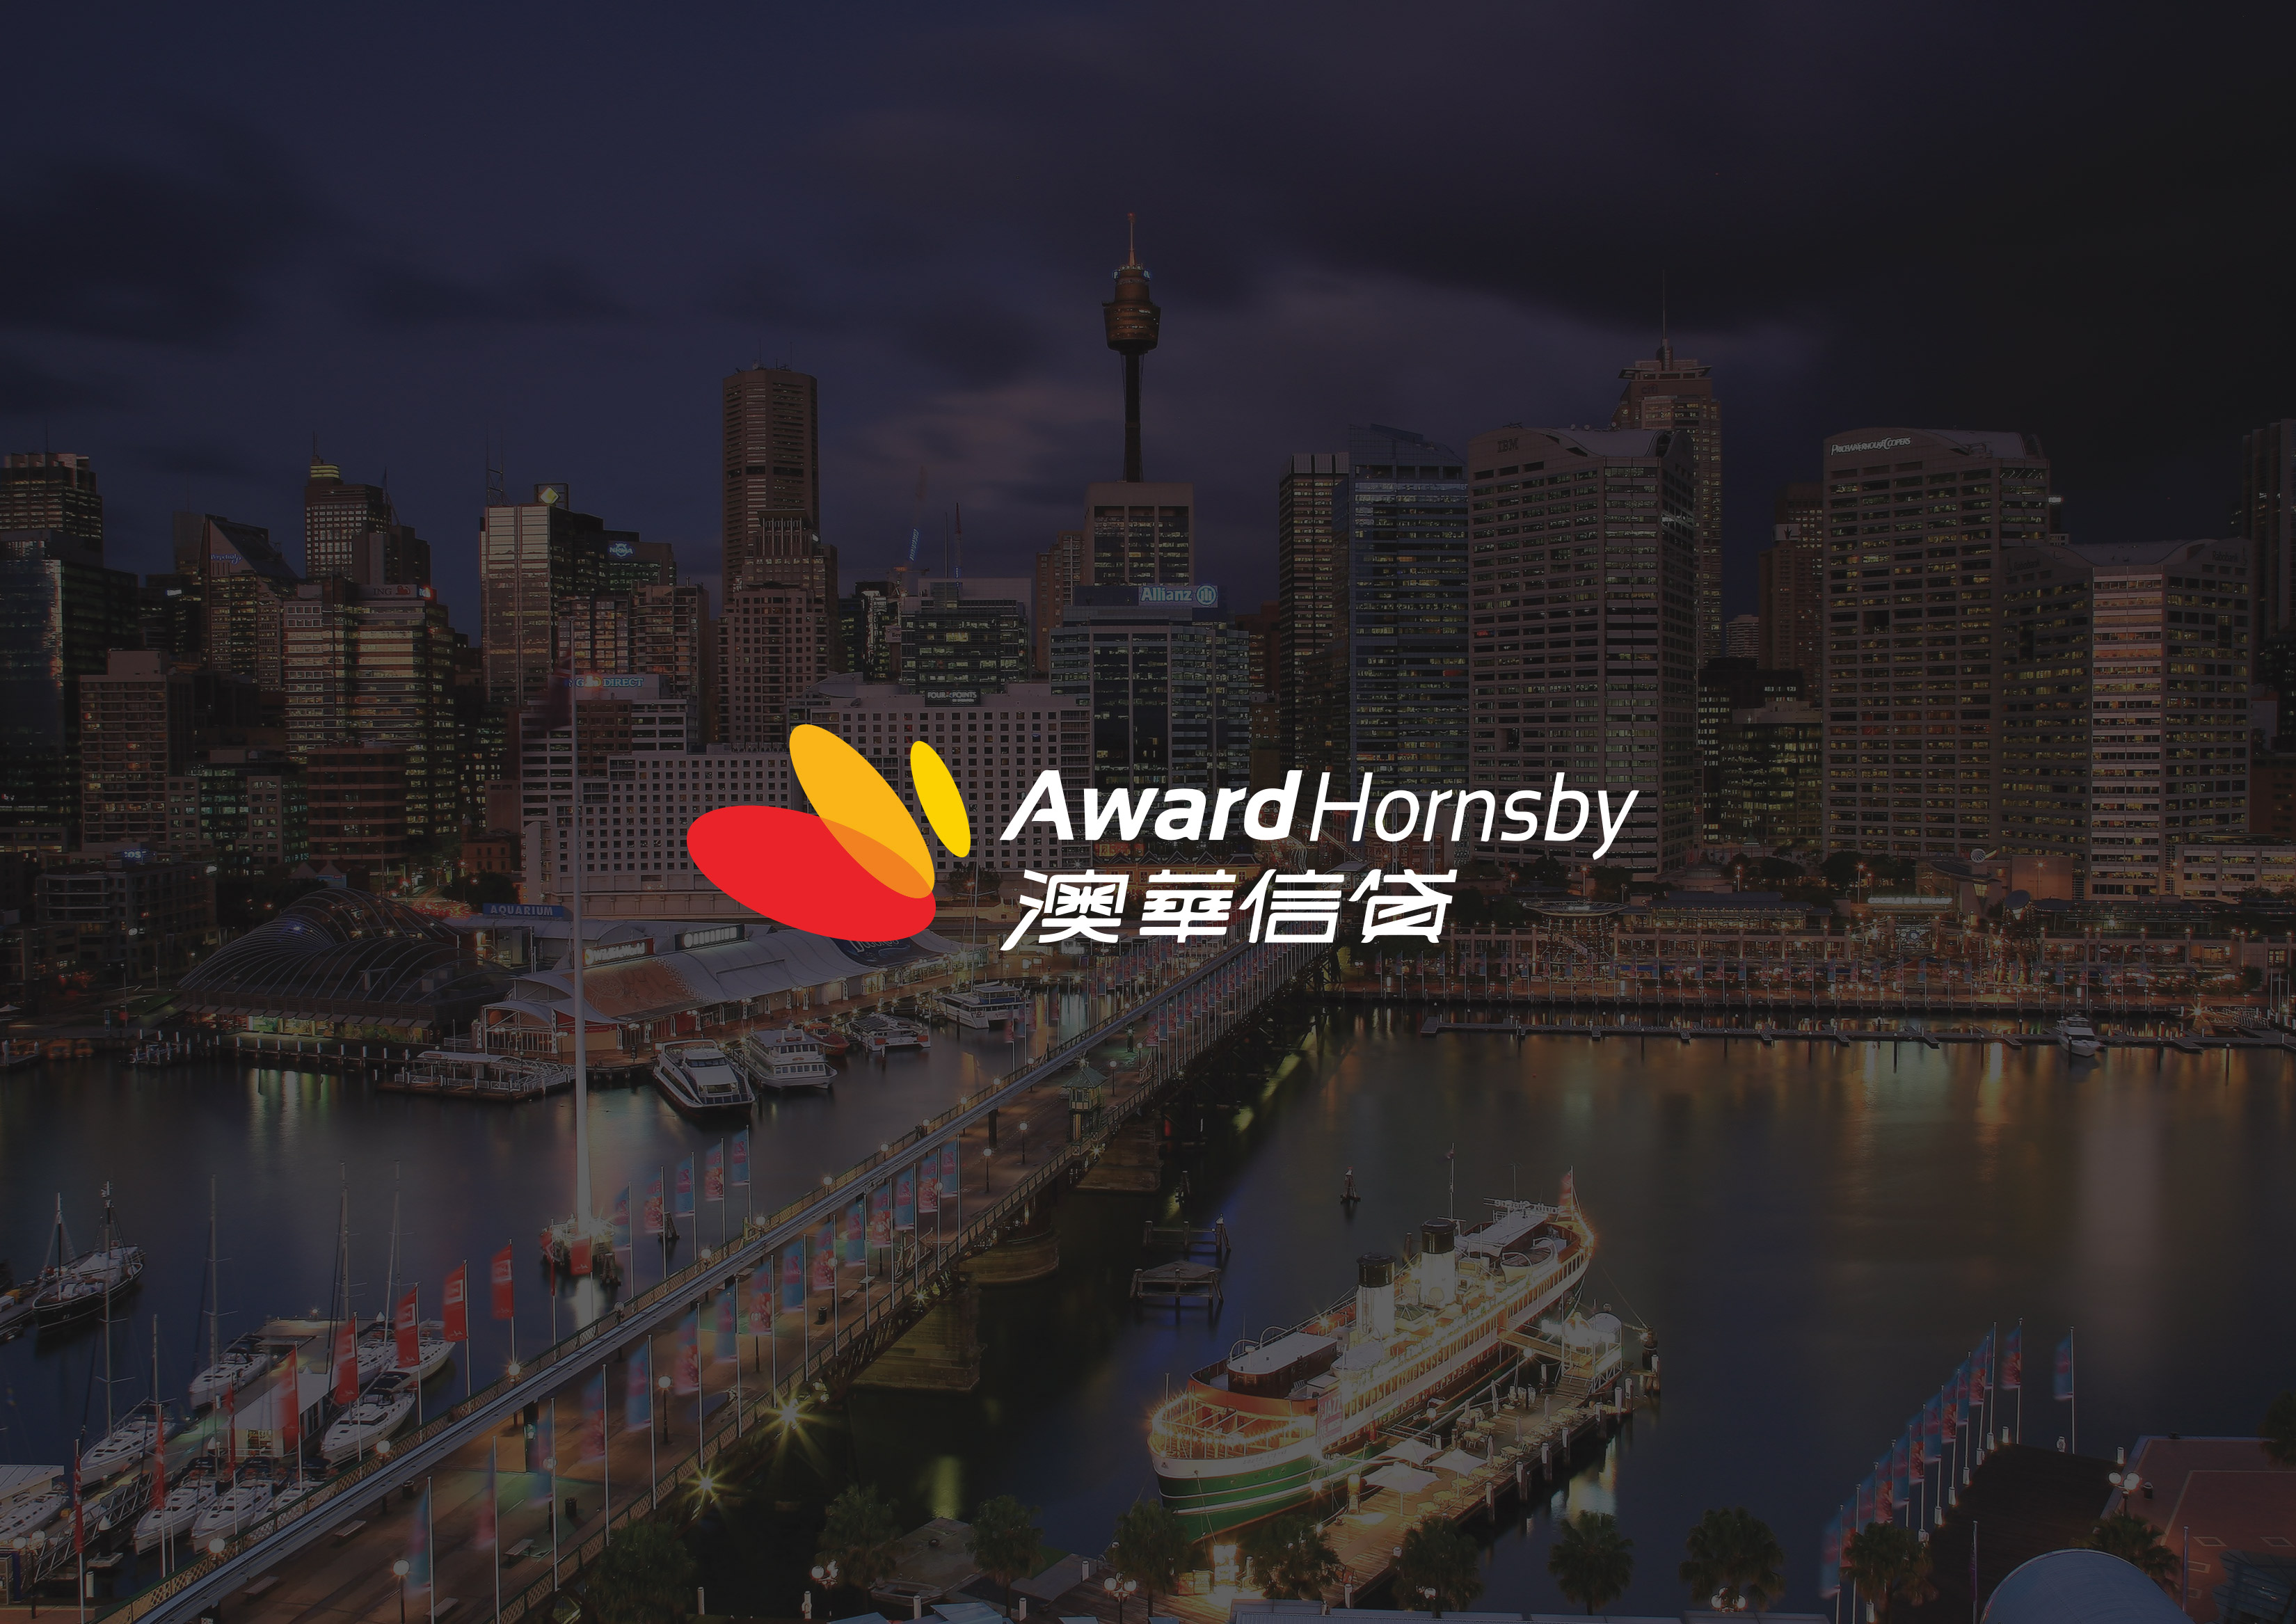 AwardHornsby-1